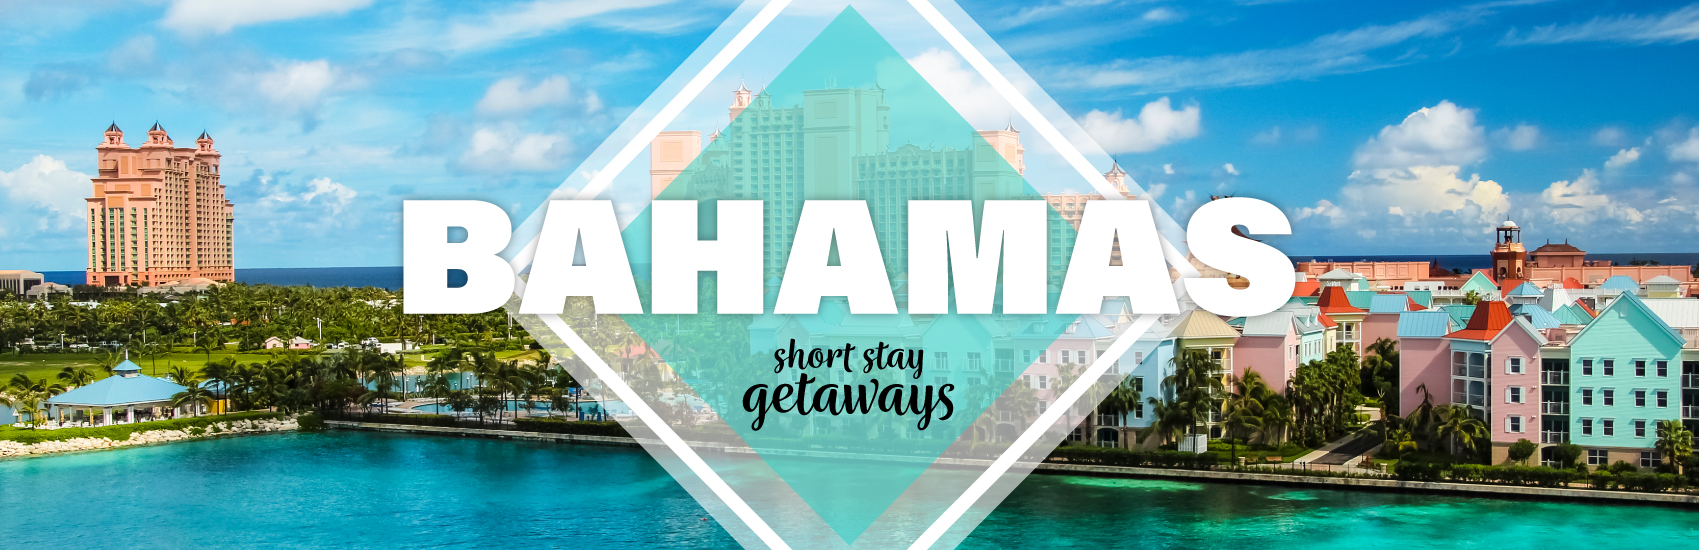 Getaway to the Bahamas